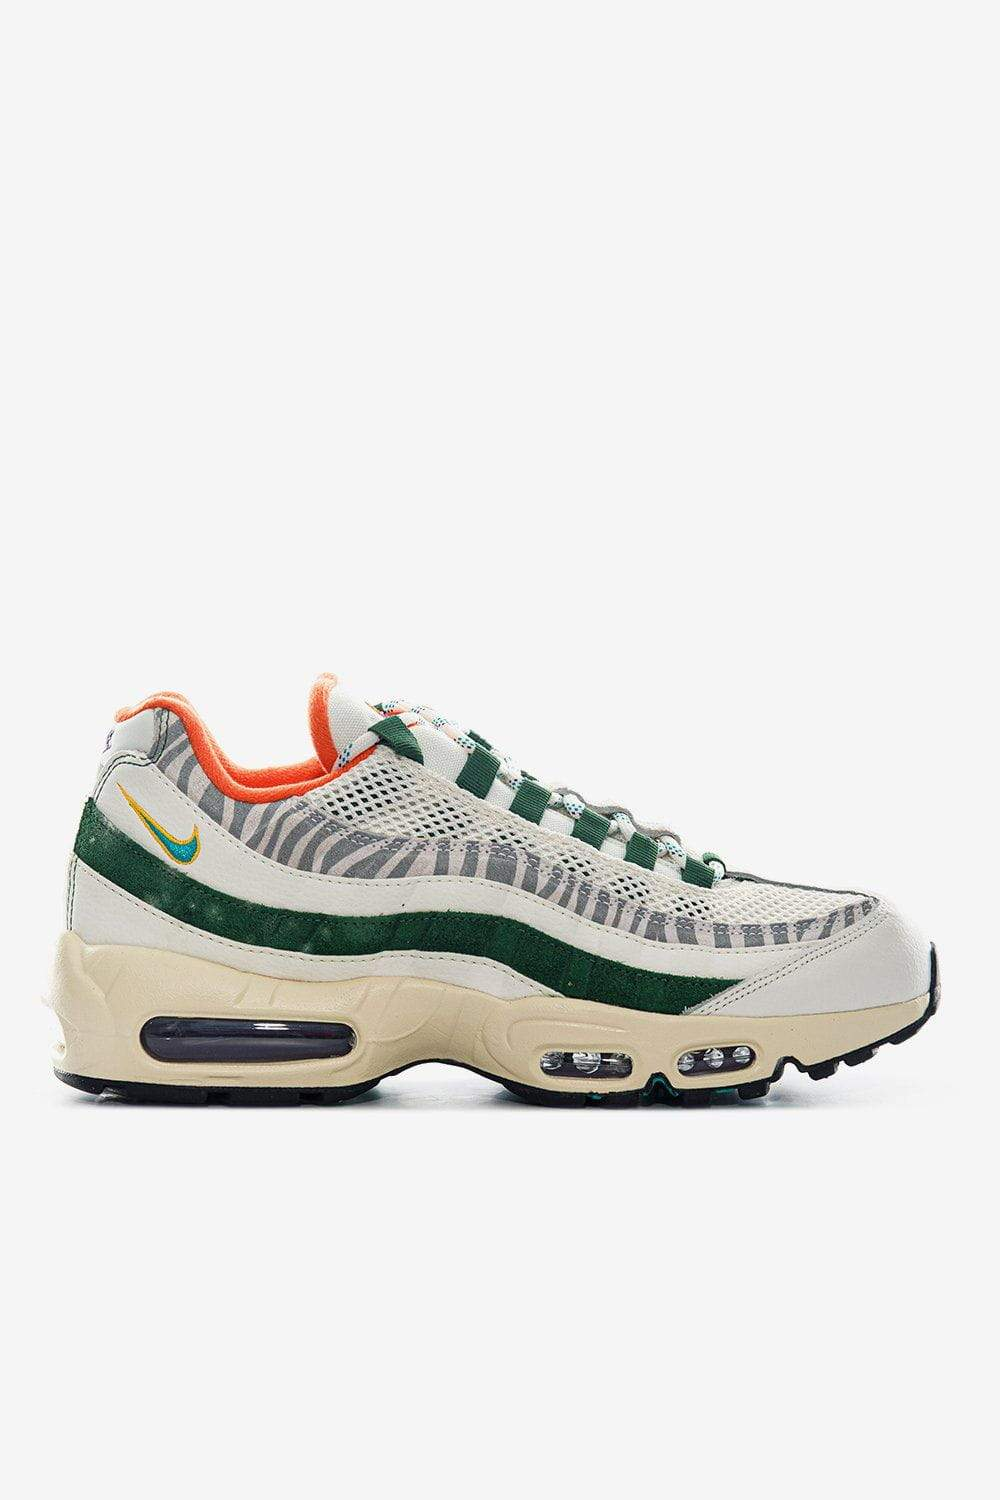 Nike Footwear Air Max 95 'Era'